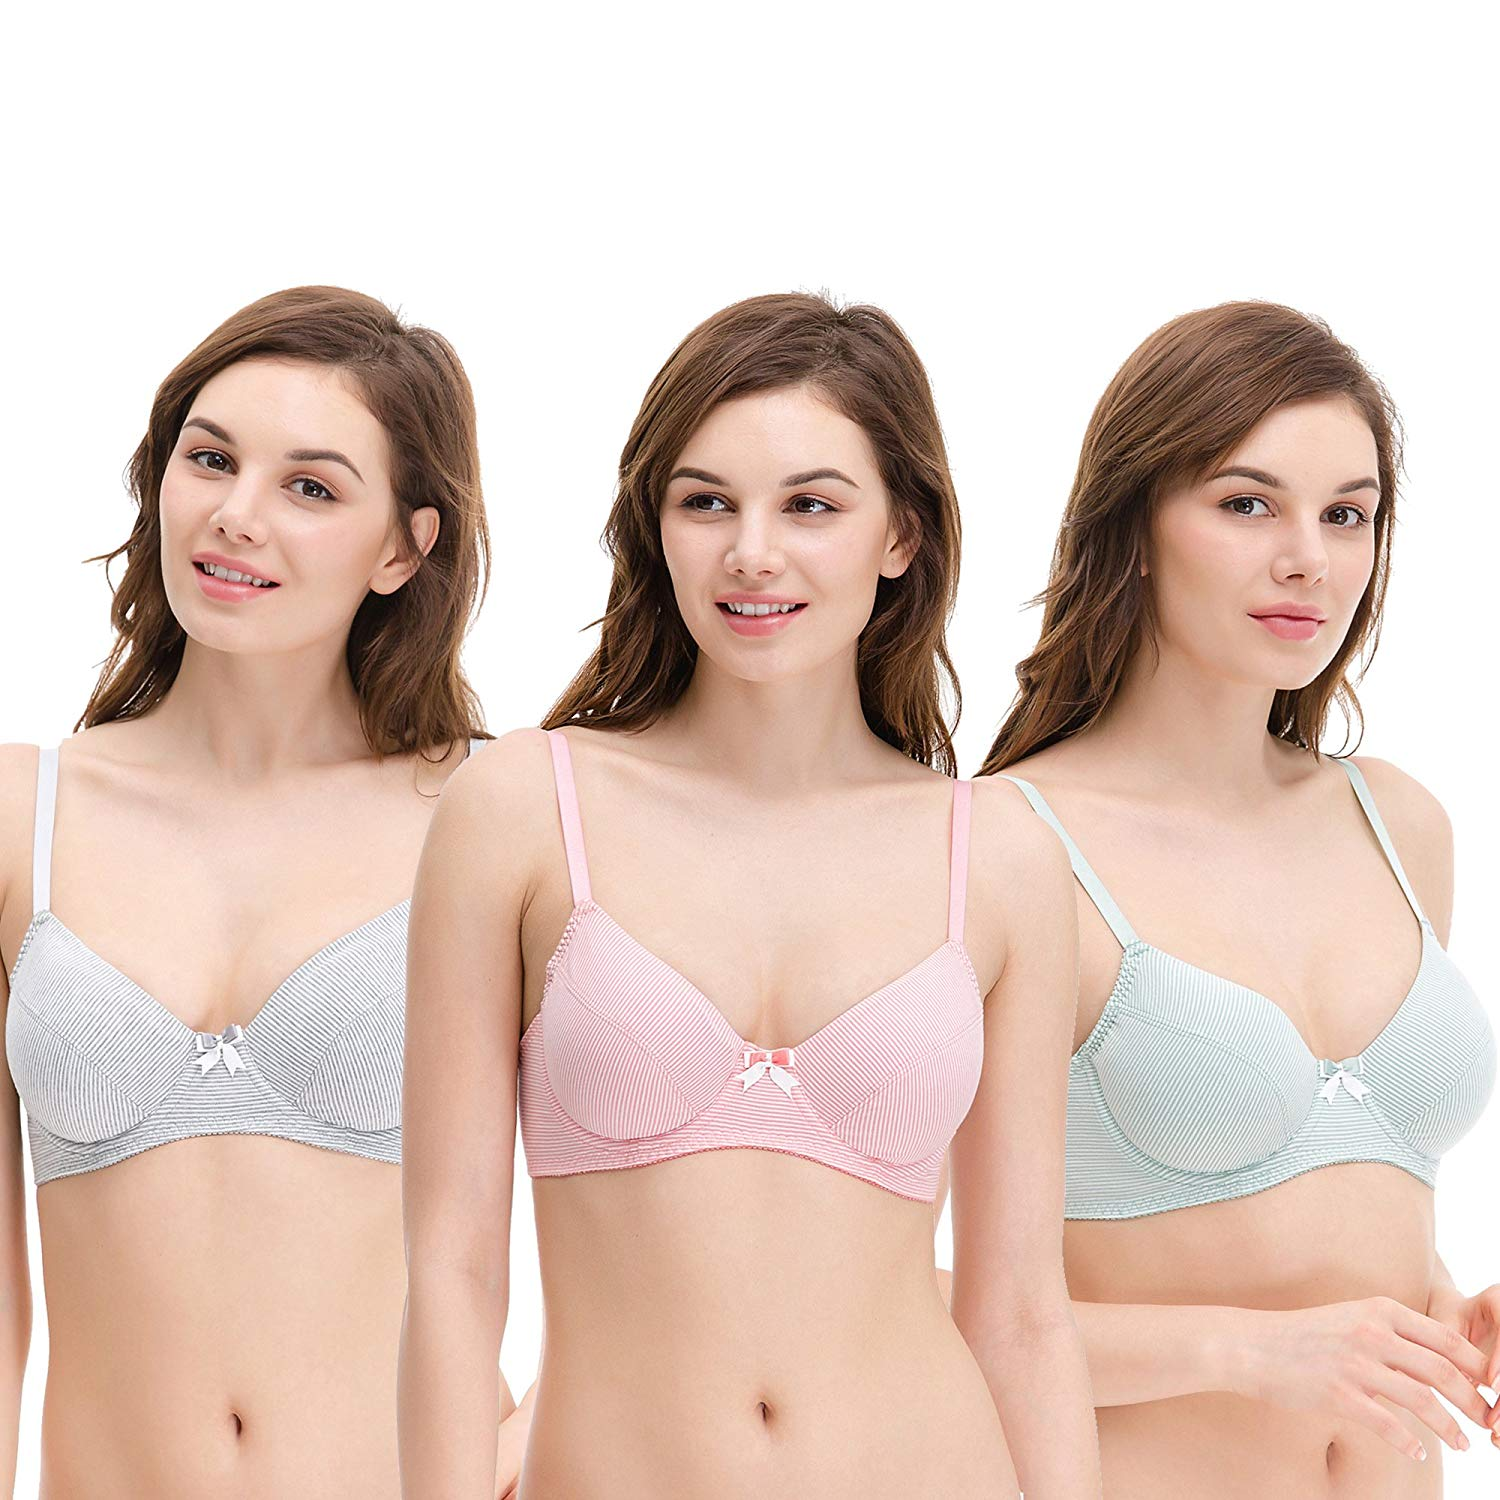 c40a97fad0 Get Quotations · Curve Muse Plus Size Unlined Balconette Underwire Bra -3Pack(Size  34B to 48DDD